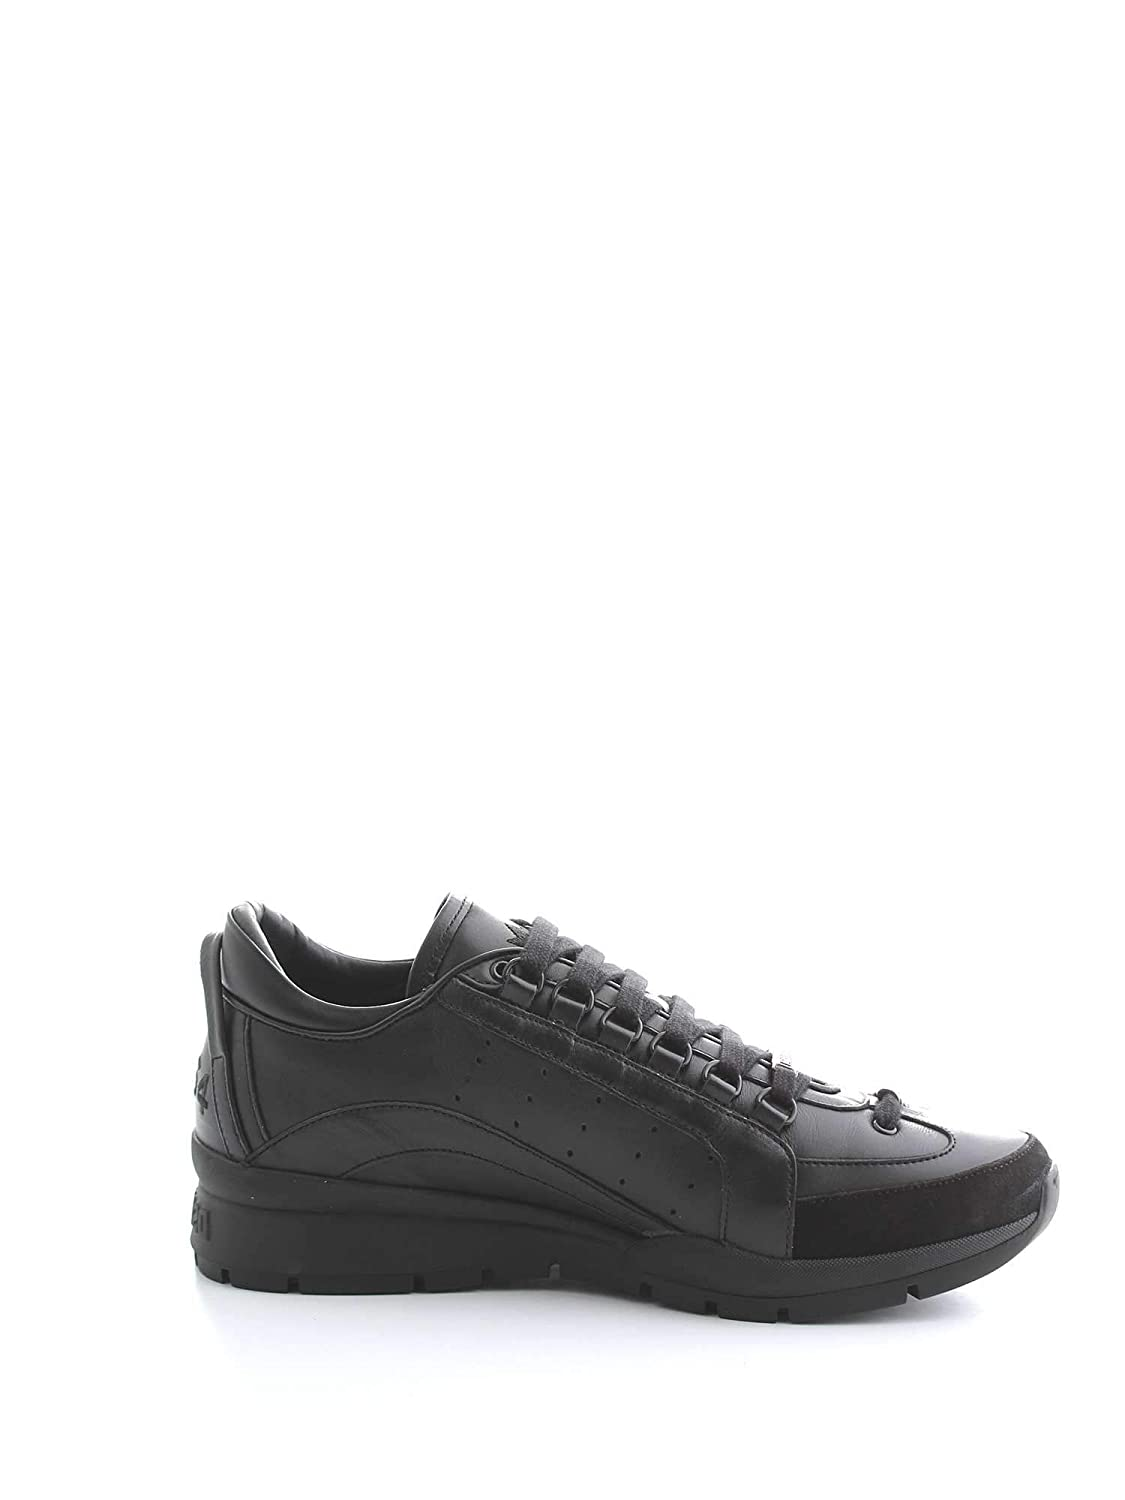 - DSQUARED2 Men's SNM040406500001M084 Black Leather Sneakers